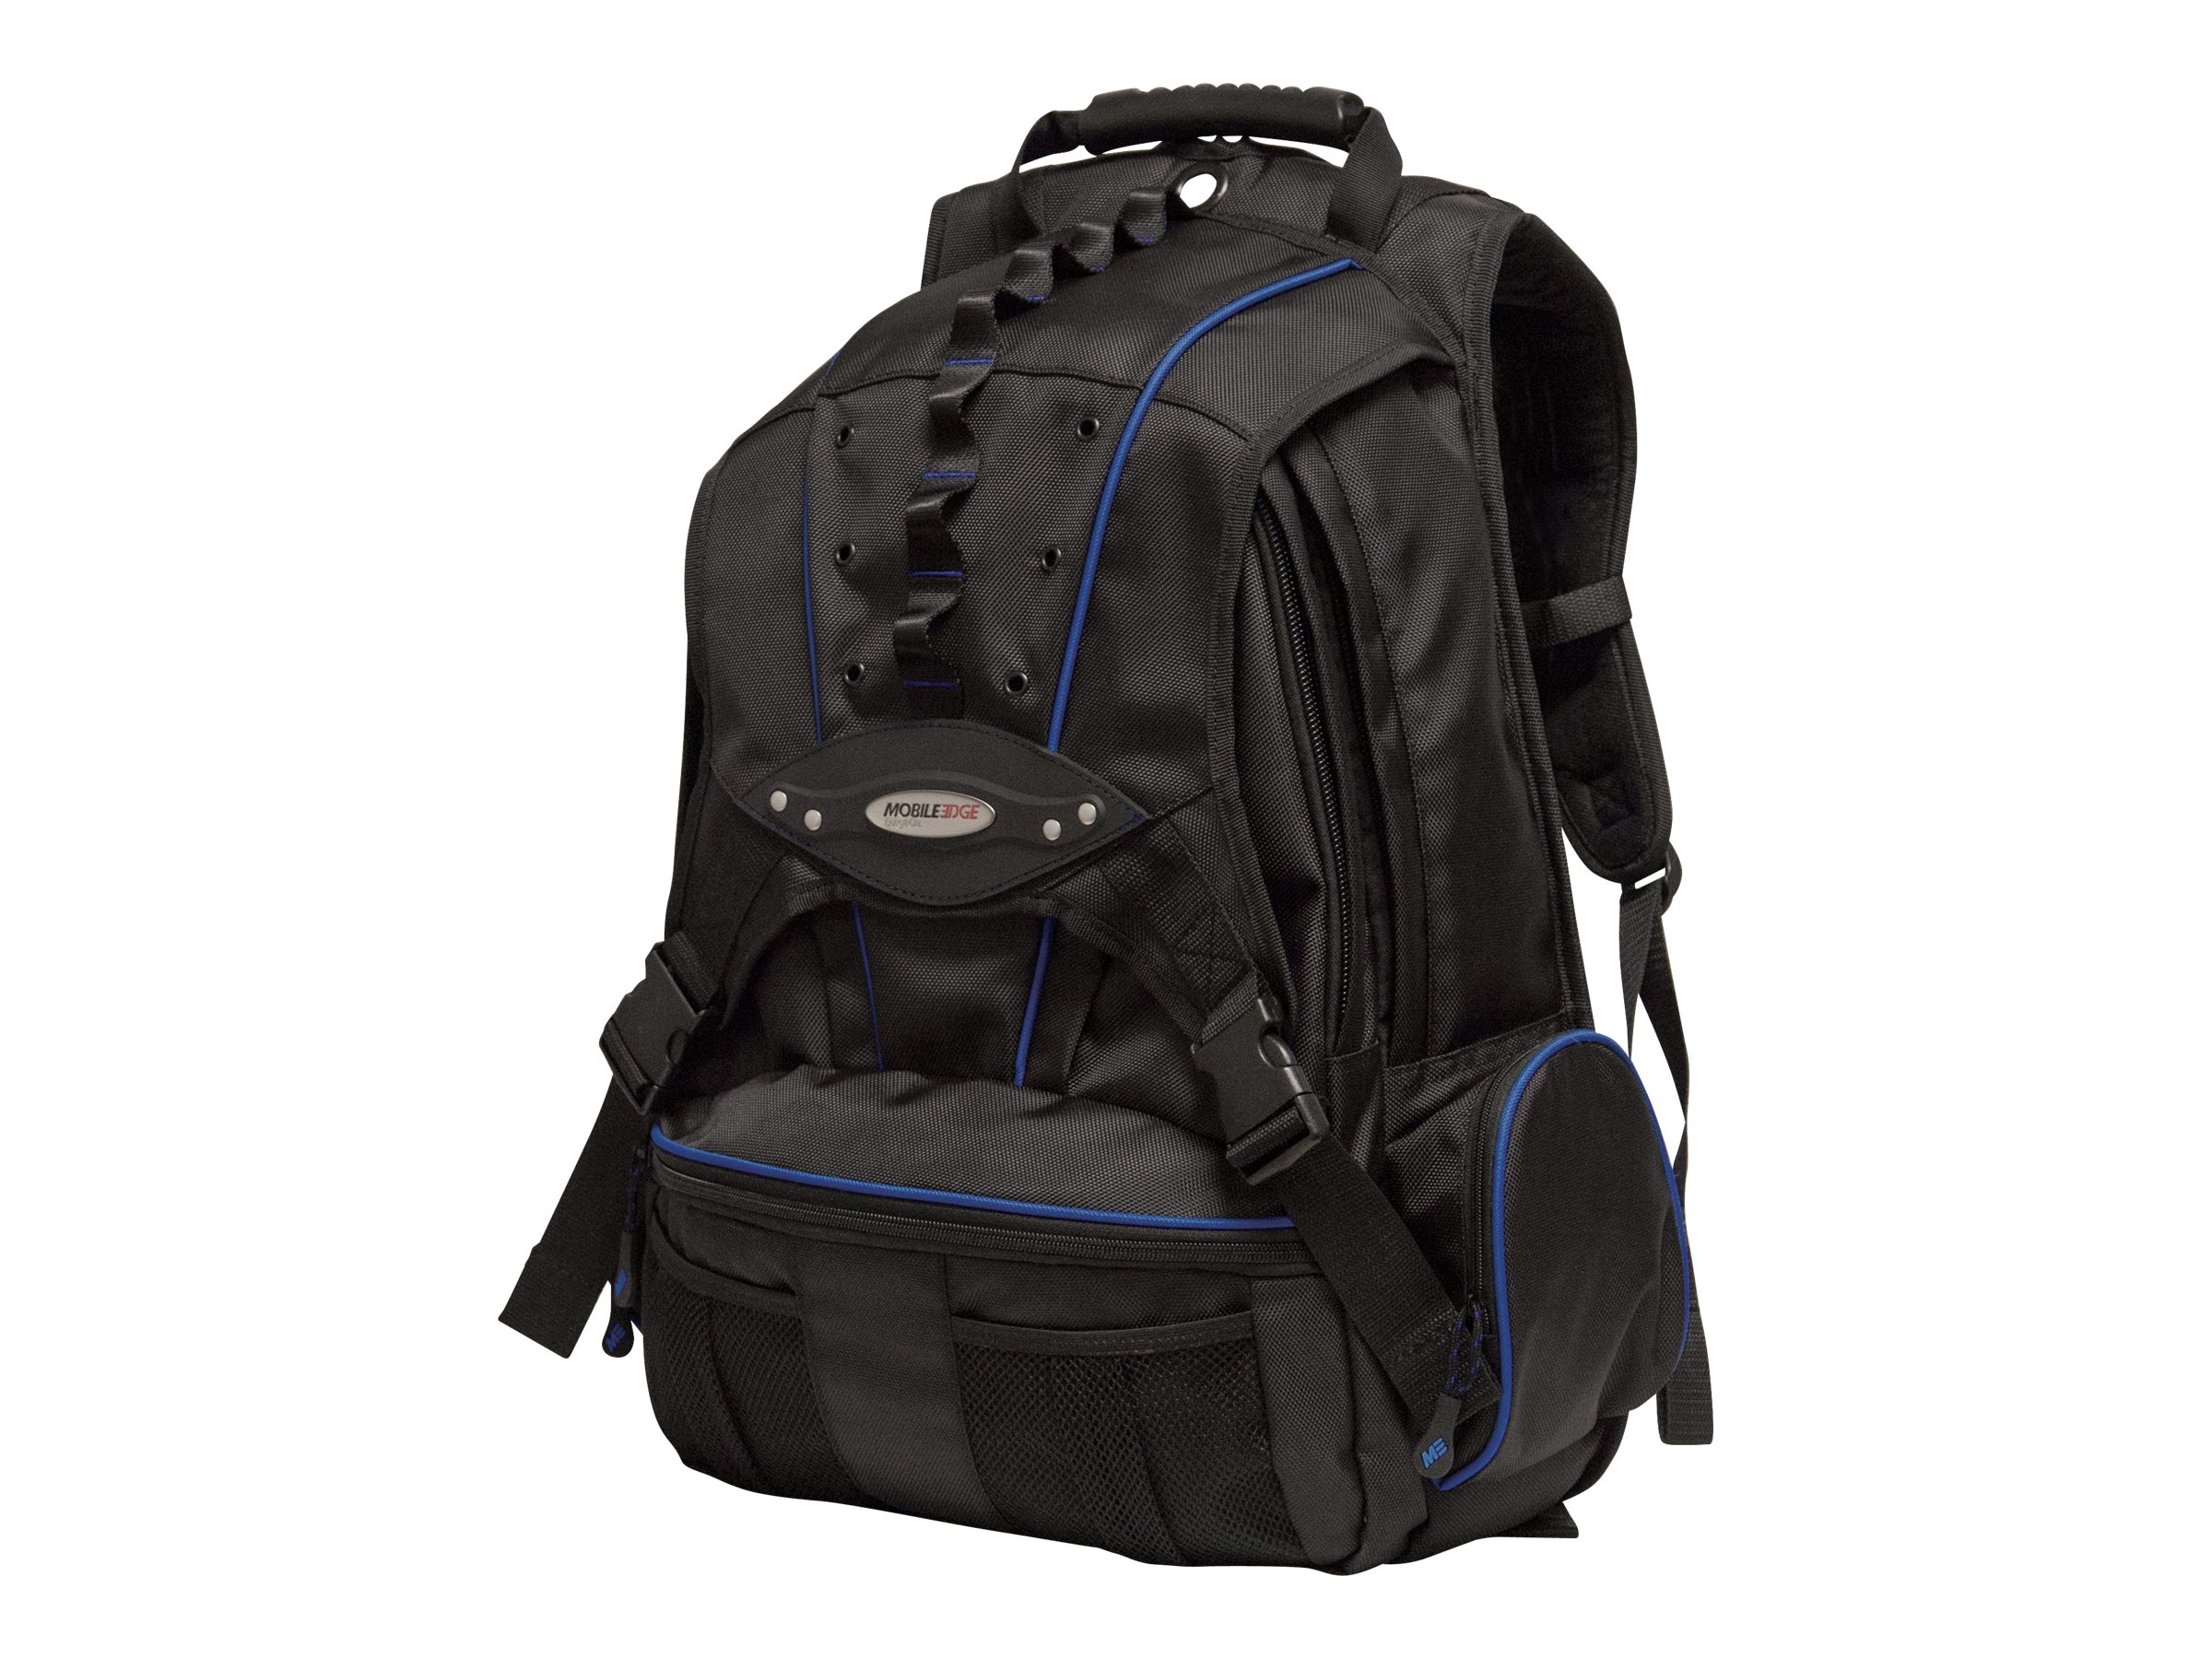 Mobile Edge 17.3 Premium Backpack, Navy Black, 1680D Ballistic Nylon, MEBPP3, 6101312, Carrying Cases - Notebook